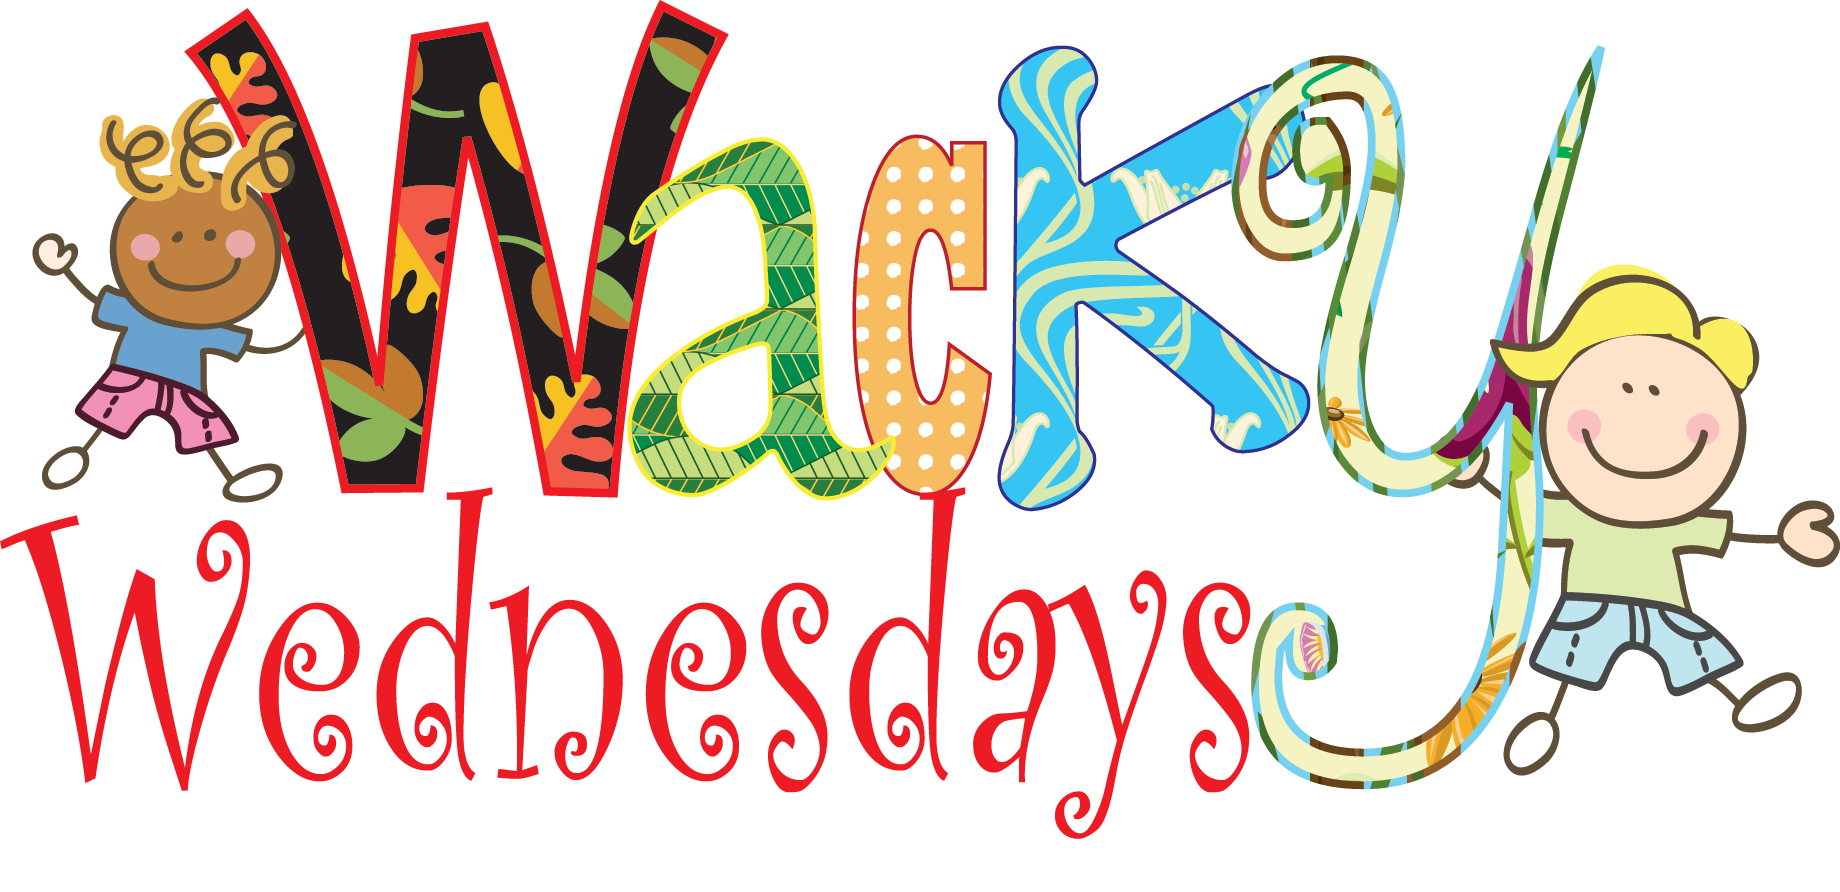 Tuesday free clipart graphic Free Wednesday Cliparts, Download Free Clip Art, Free Clip ... graphic